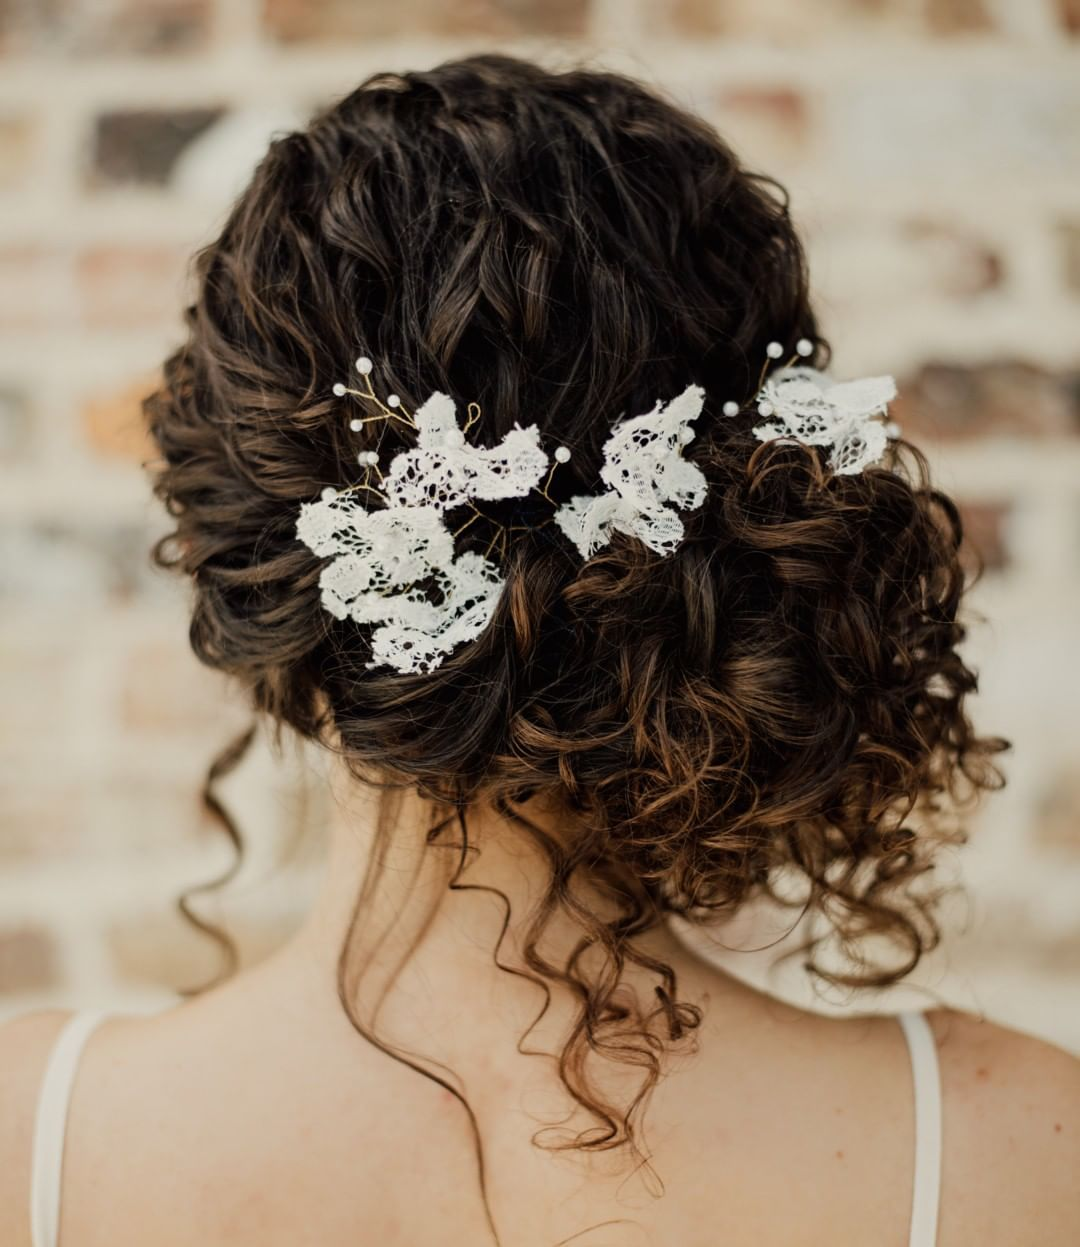 30 Wedding Hairstyles For Naturally Curly Hair Blink Bliss Curly Hair Styles Naturally Curly Bridal Hair Curly Wedding Hair